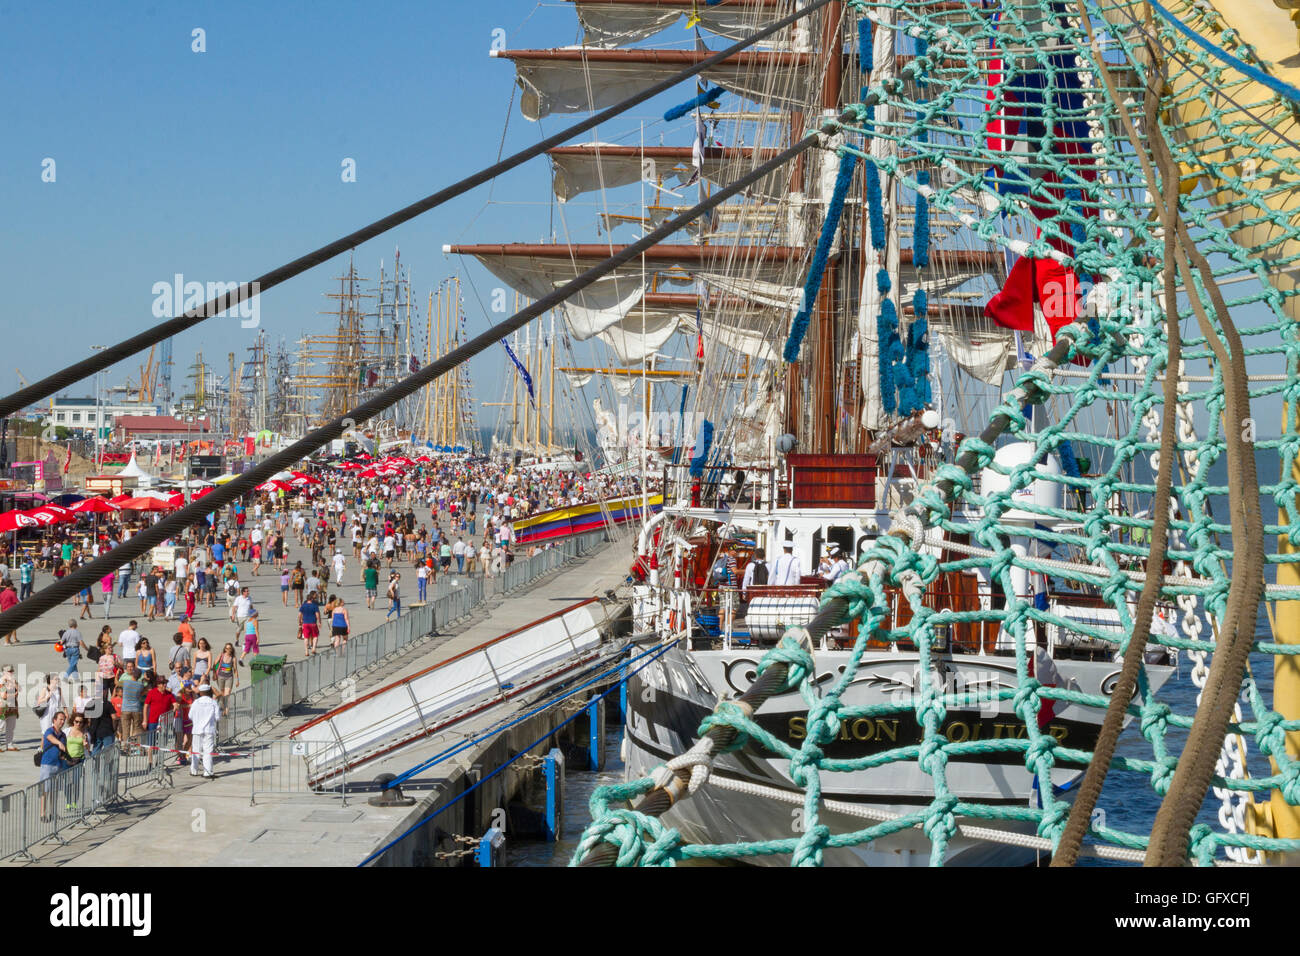 The activity at the Tall Ships Race event at Lisbon docks 2016. Simon Bolivar from Venezuela in the foreground - Stock Image